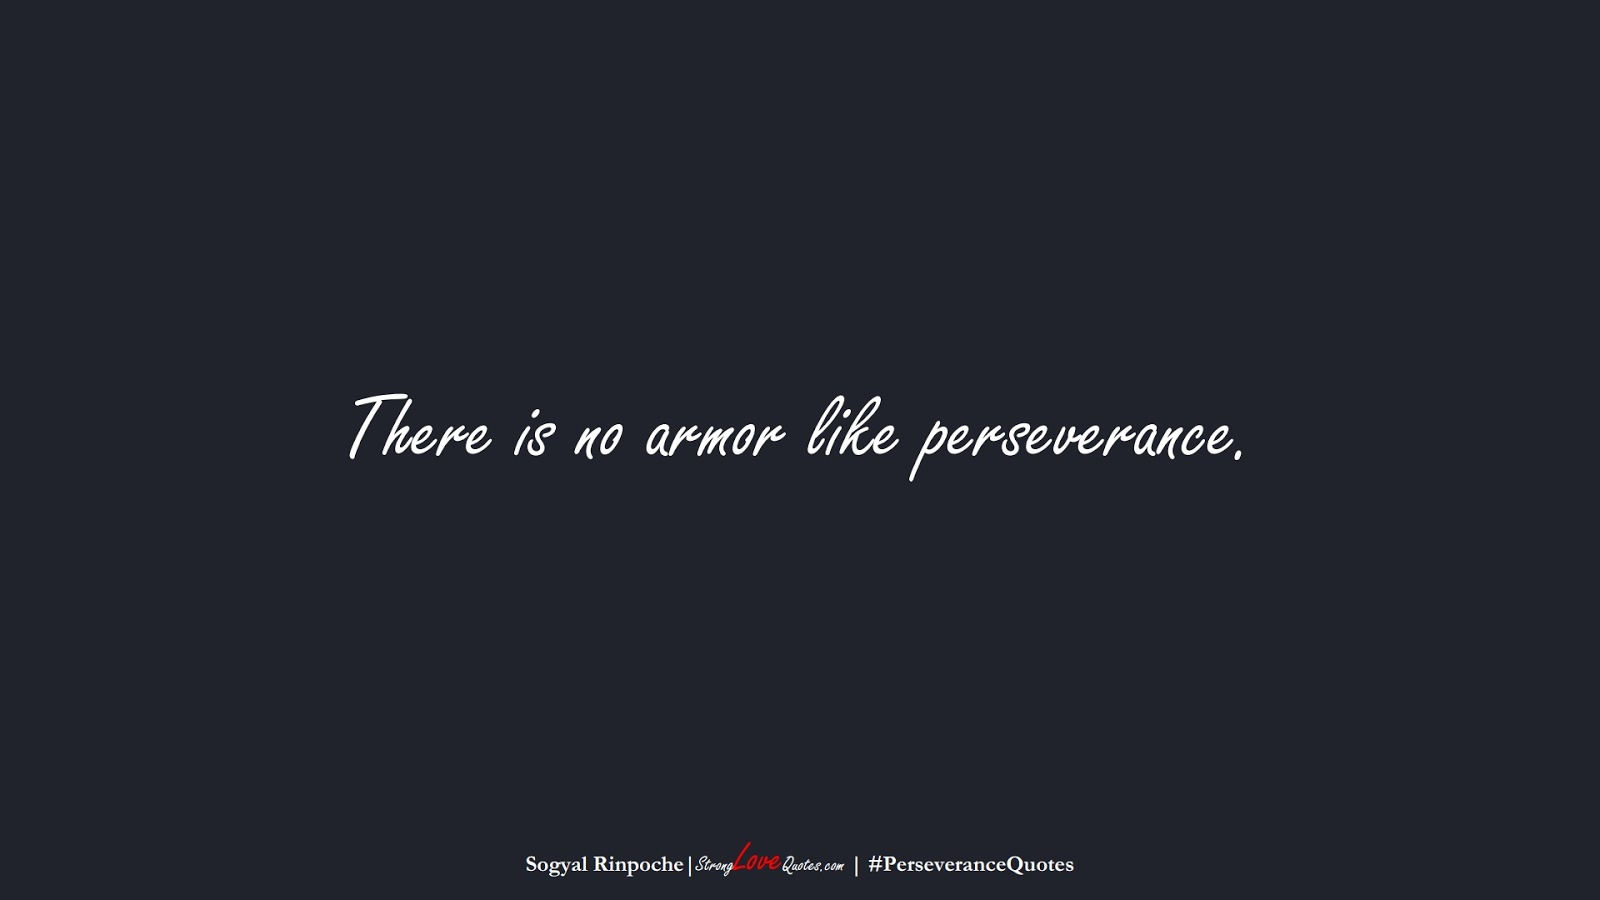 There is no armor like perseverance. (Sogyal Rinpoche);  #PerseveranceQuotes